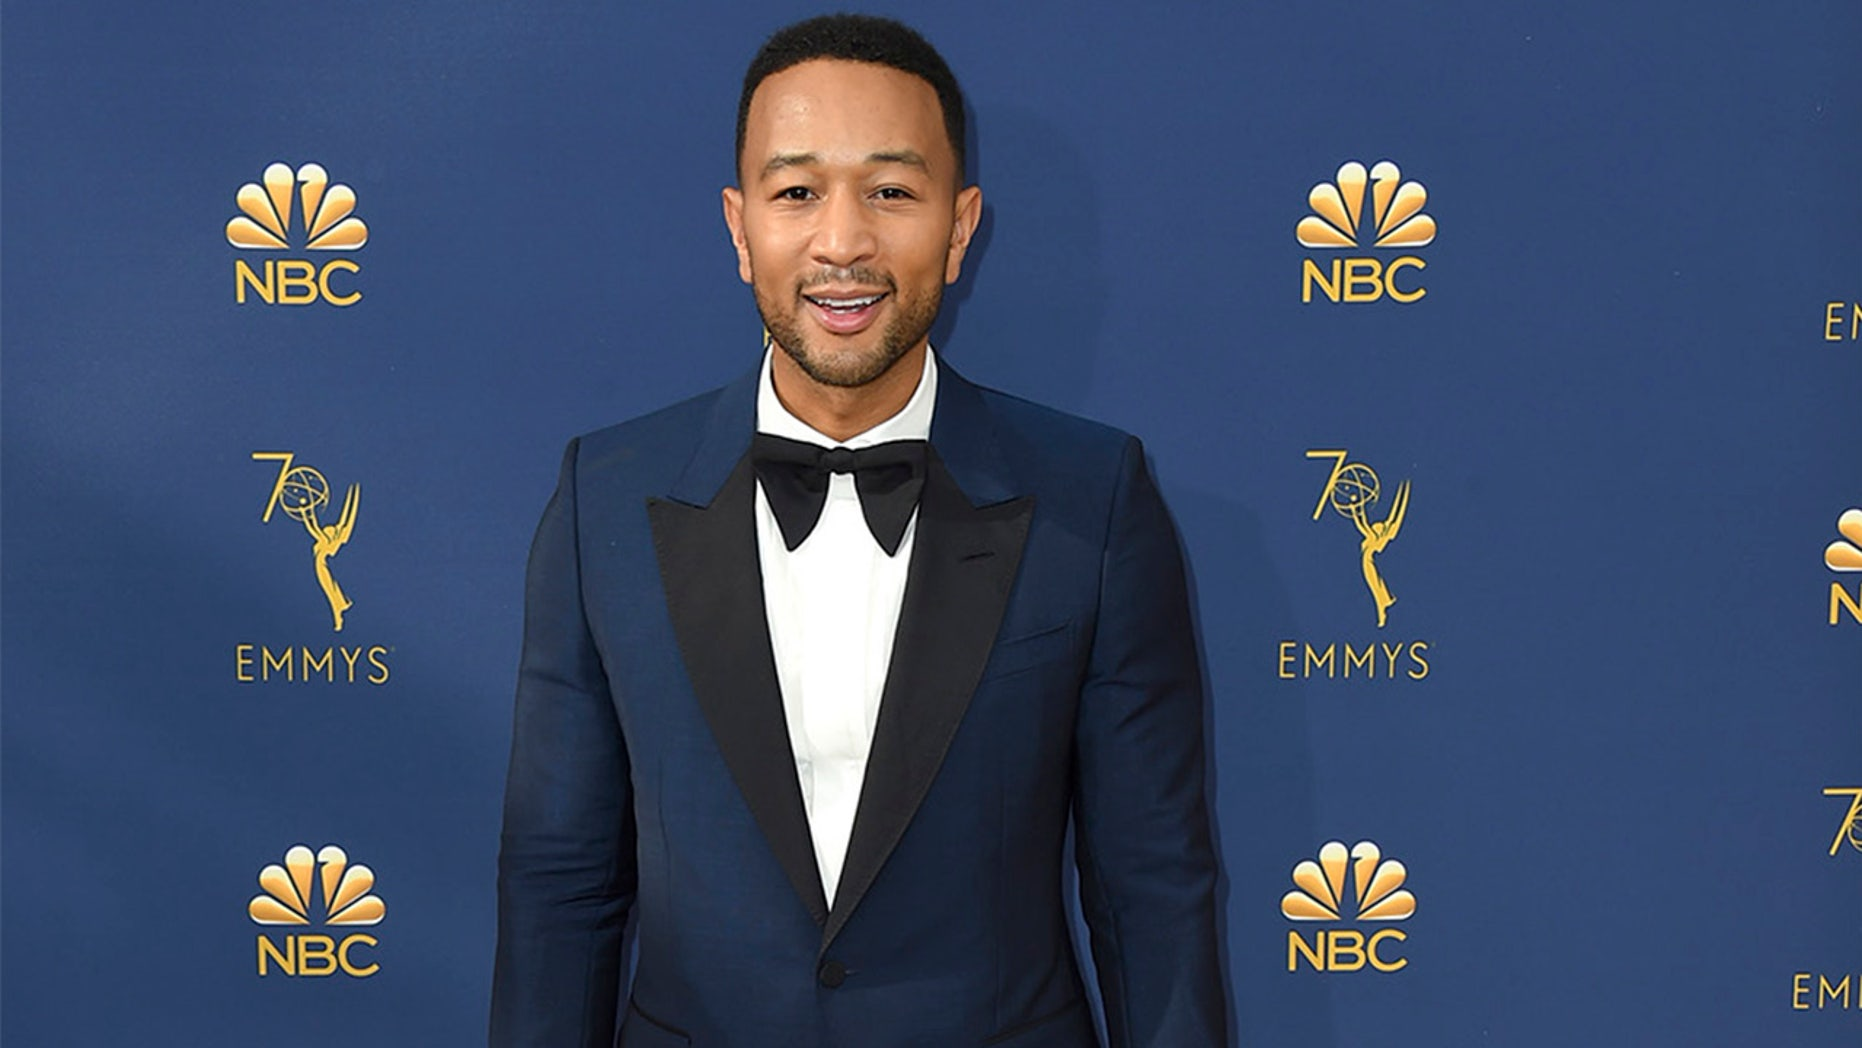 """John Legend has joined in the fun of the """"Florida Man"""" challenge, where people are finding wild """"Florida man"""" headlines published on their birthdays. (Photo by Jordan Strauss/Invision/AP)"""